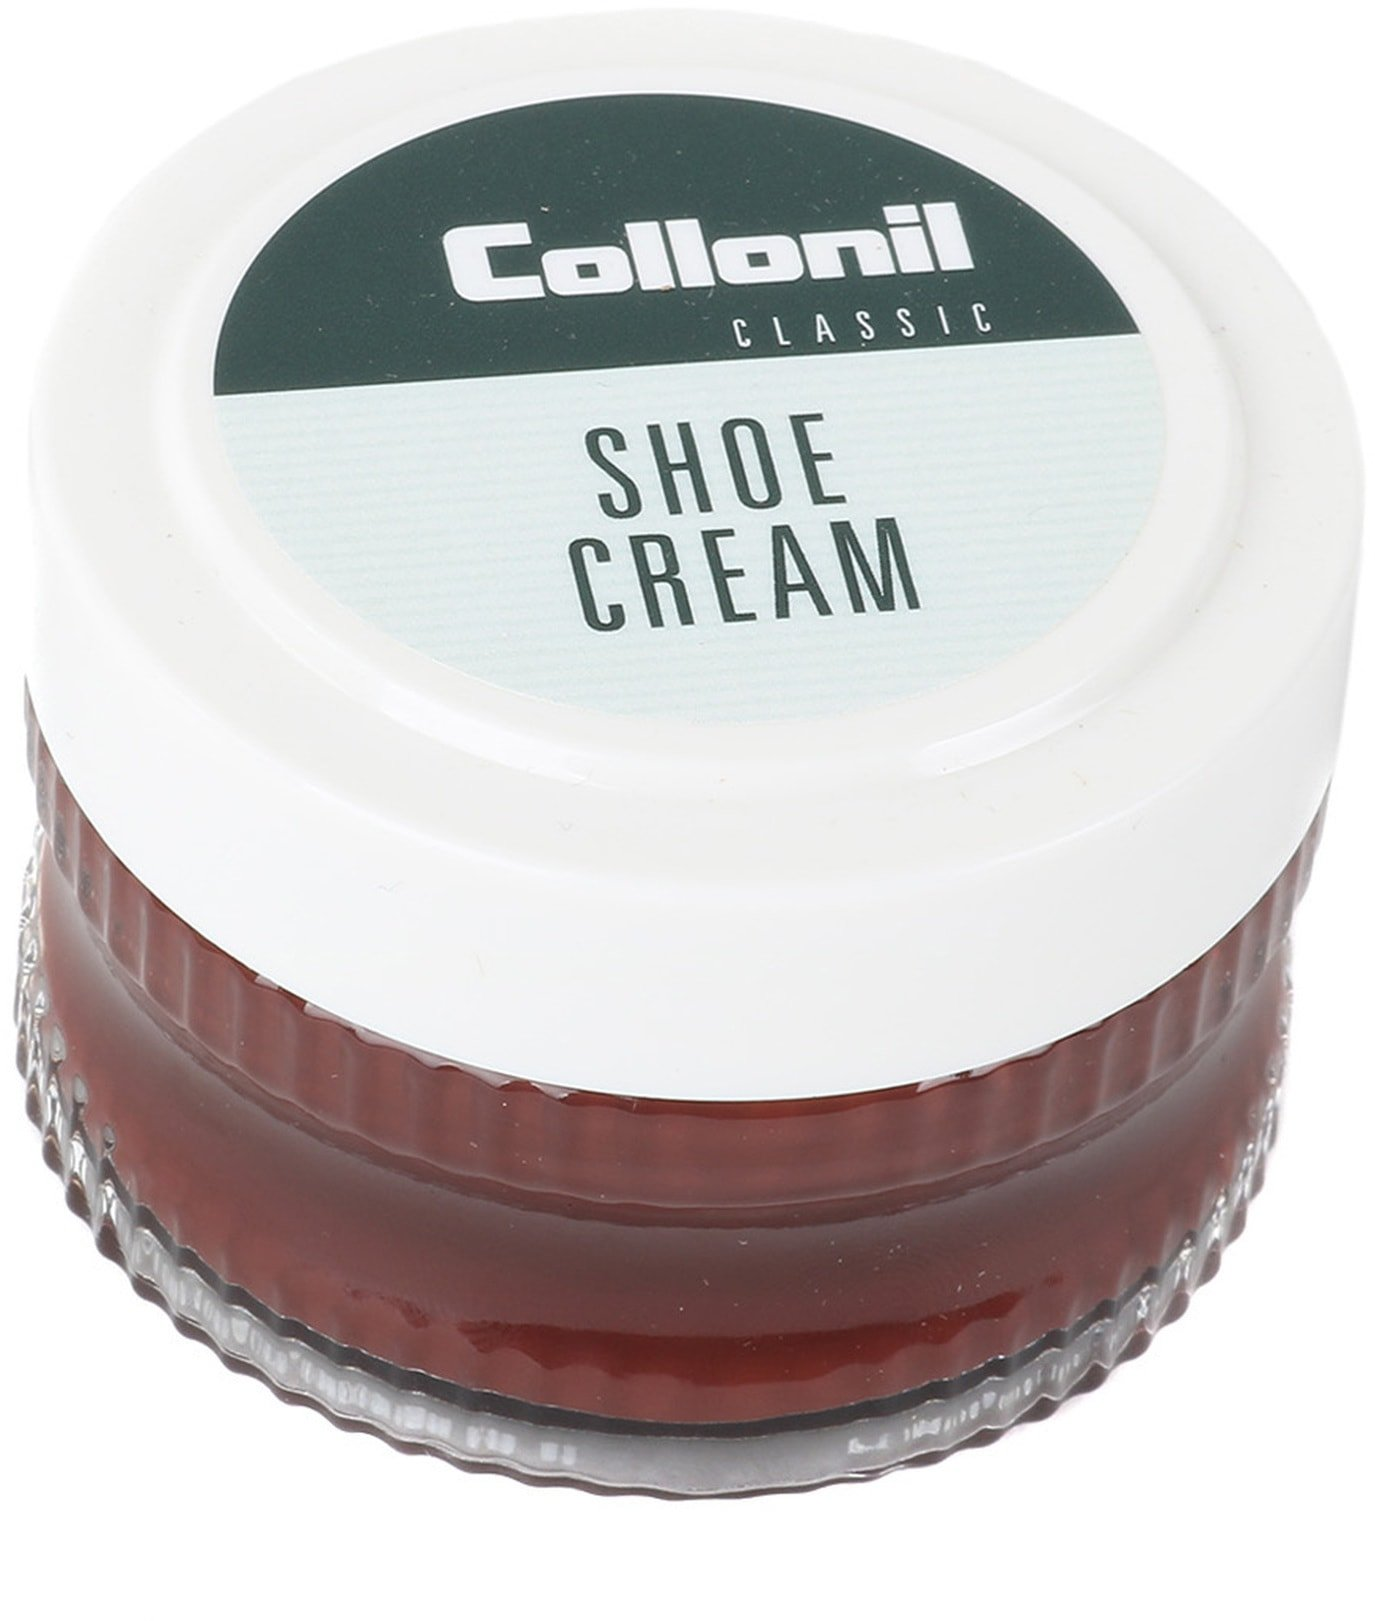 Collonil Shoe Cream Kastanjebruin foto 0